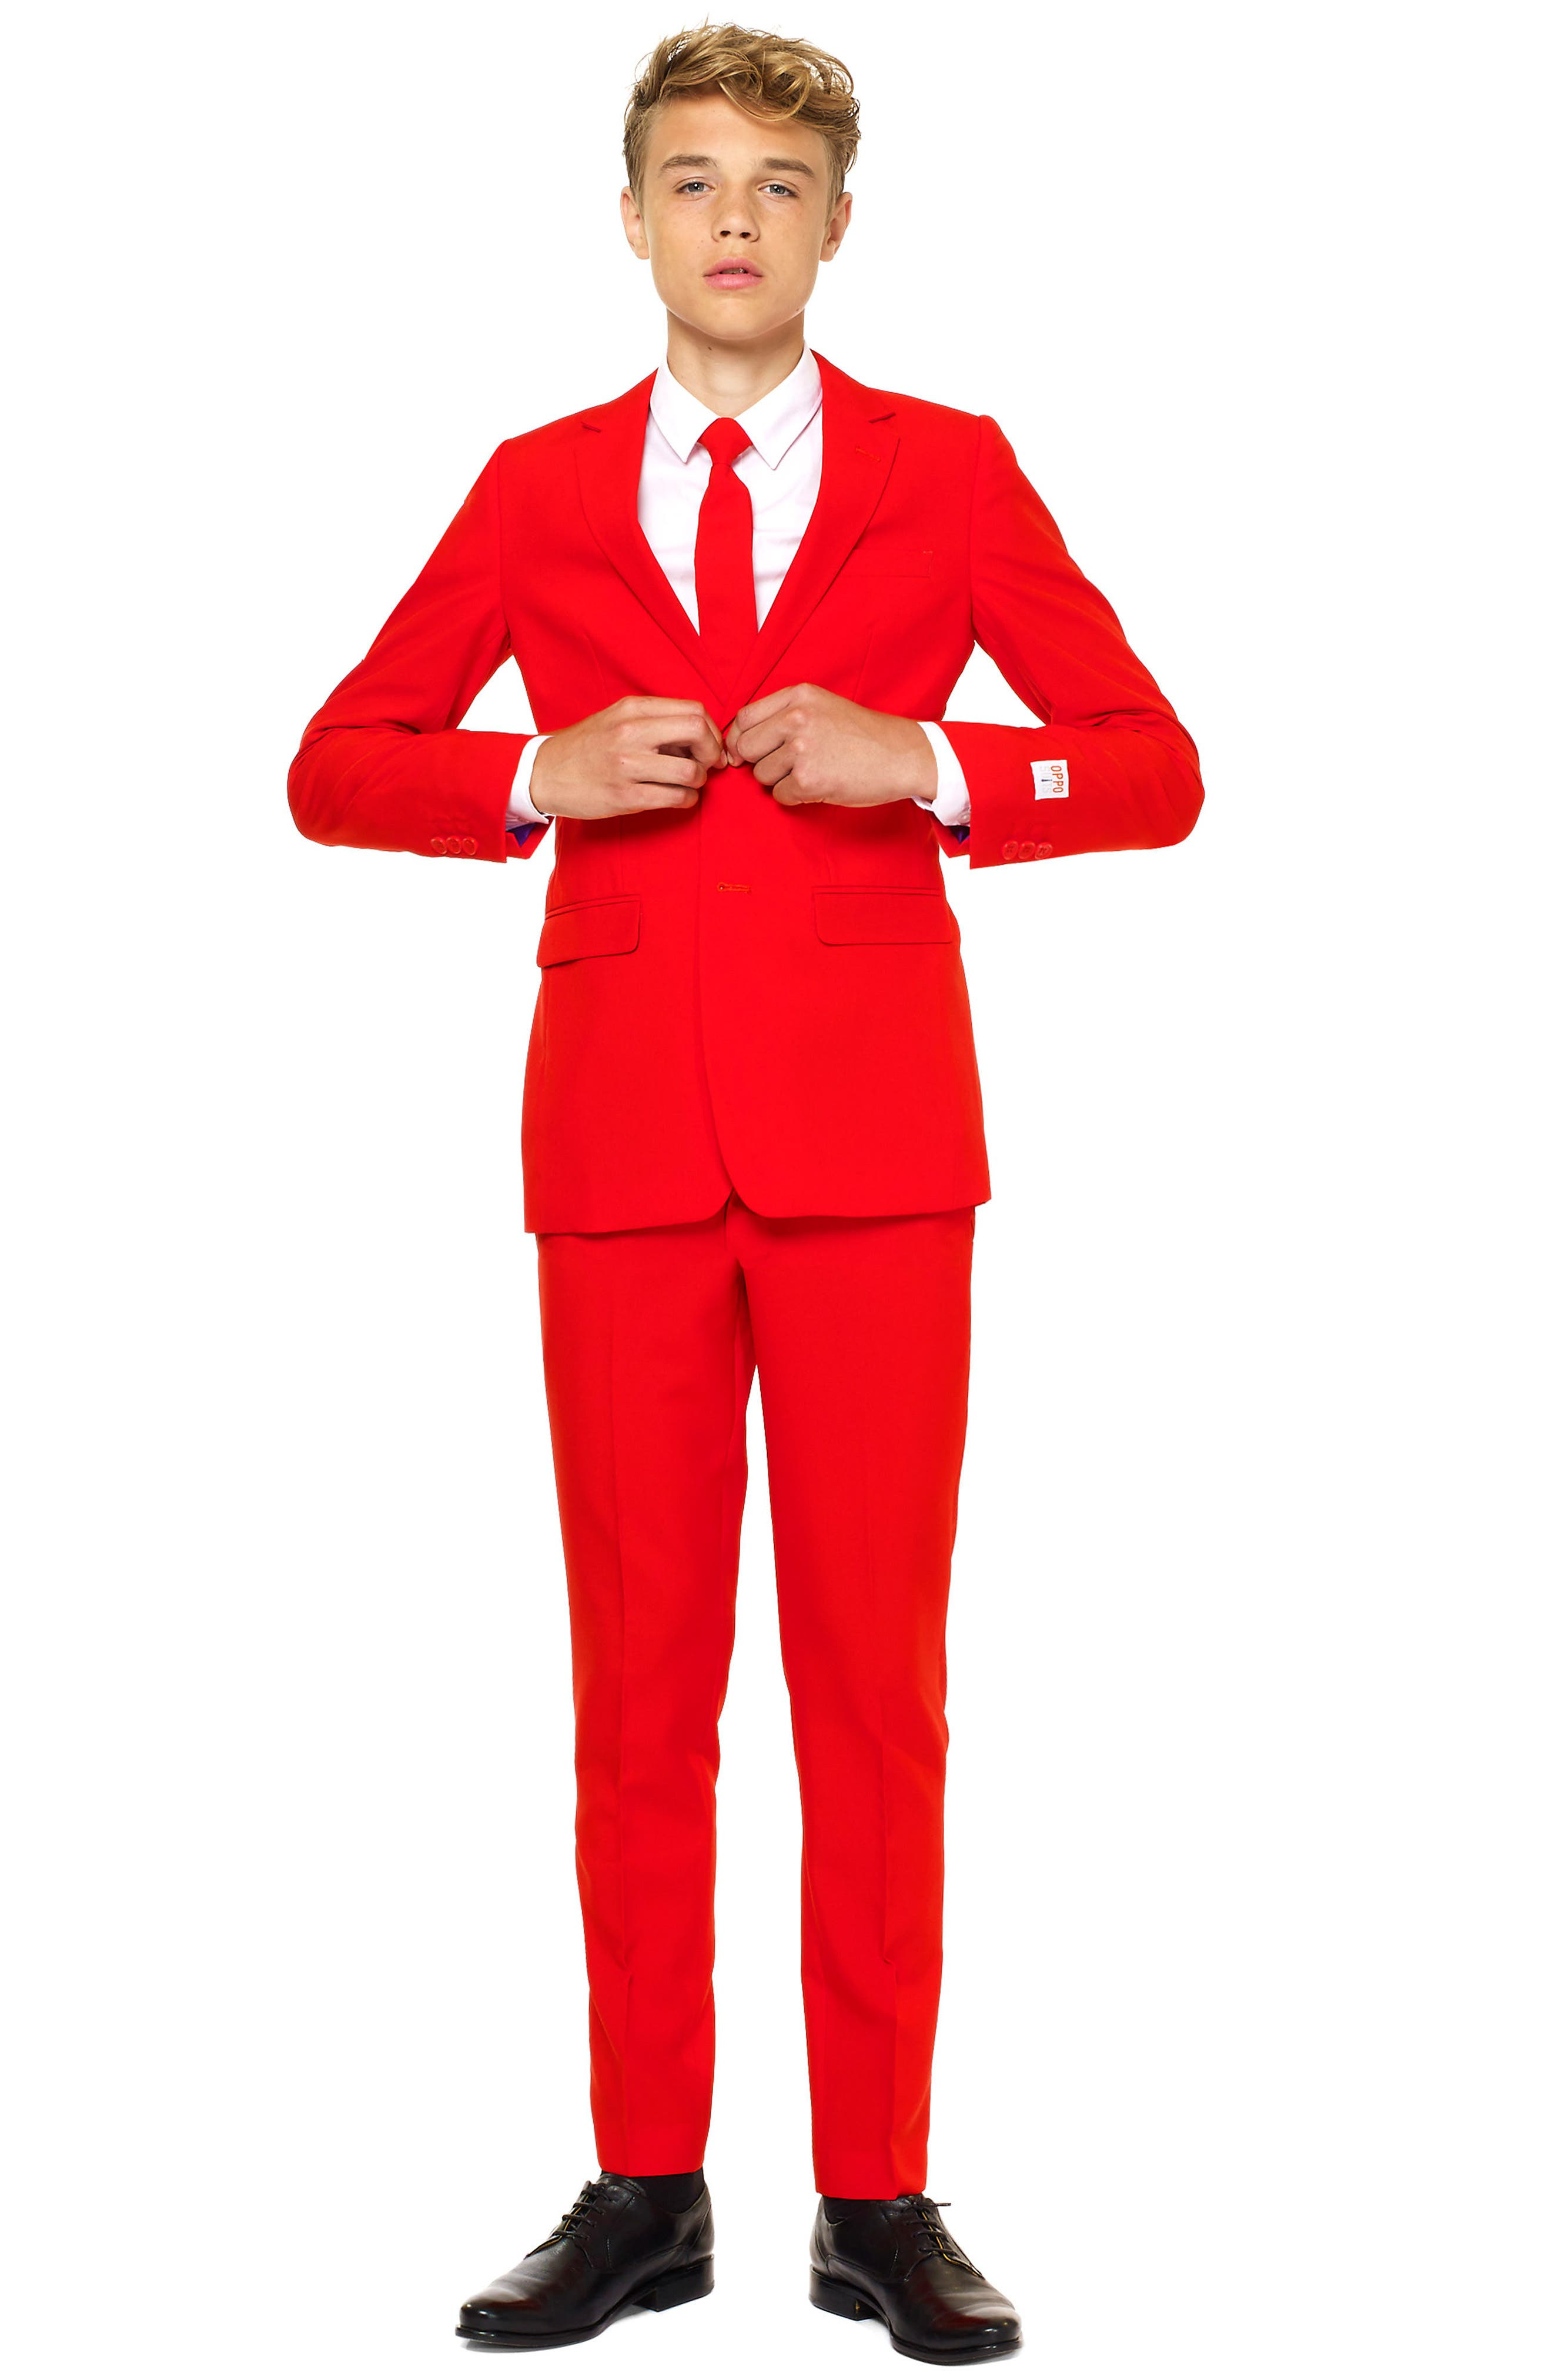 Red Devil Two-Piece Suit with Tie,                             Main thumbnail 1, color,                             RED